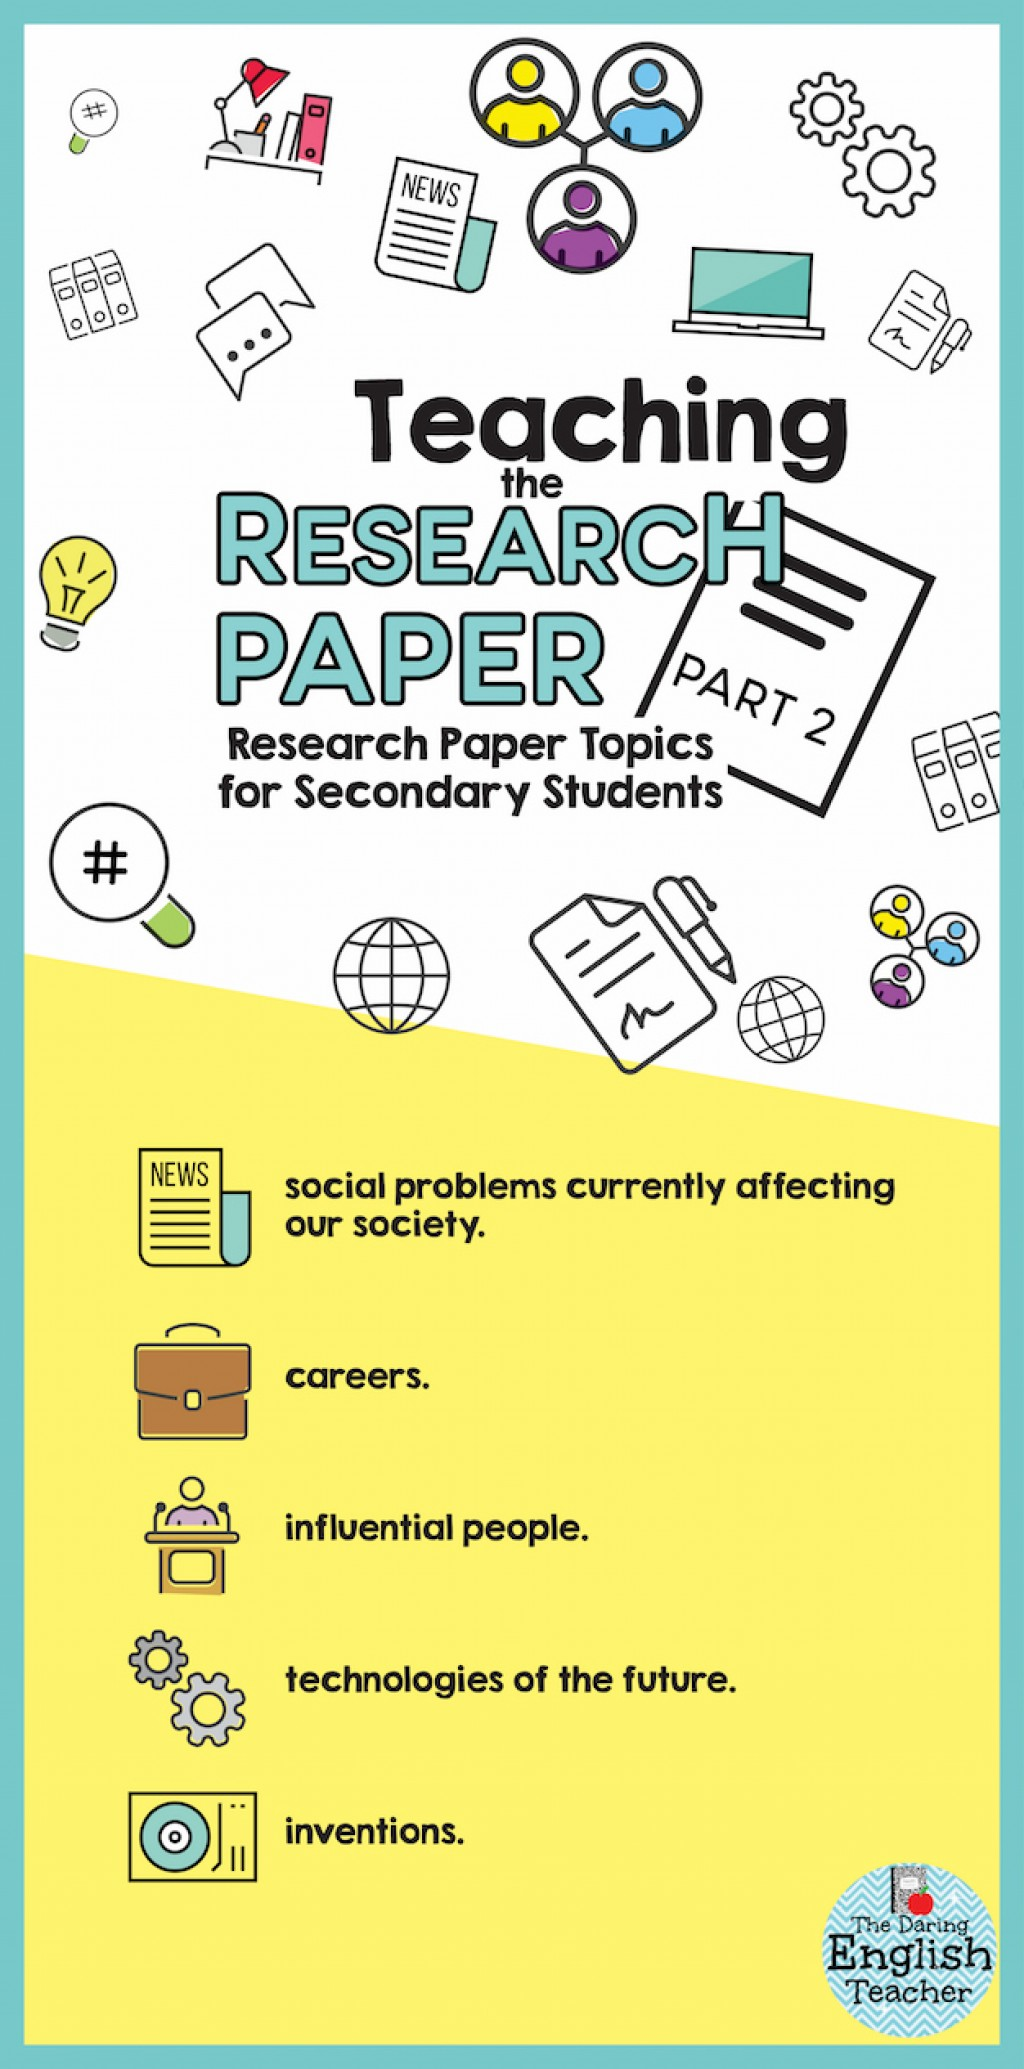 005 Infographic2bp22b2 Research Paper English Awful Topics Literature Easy Large